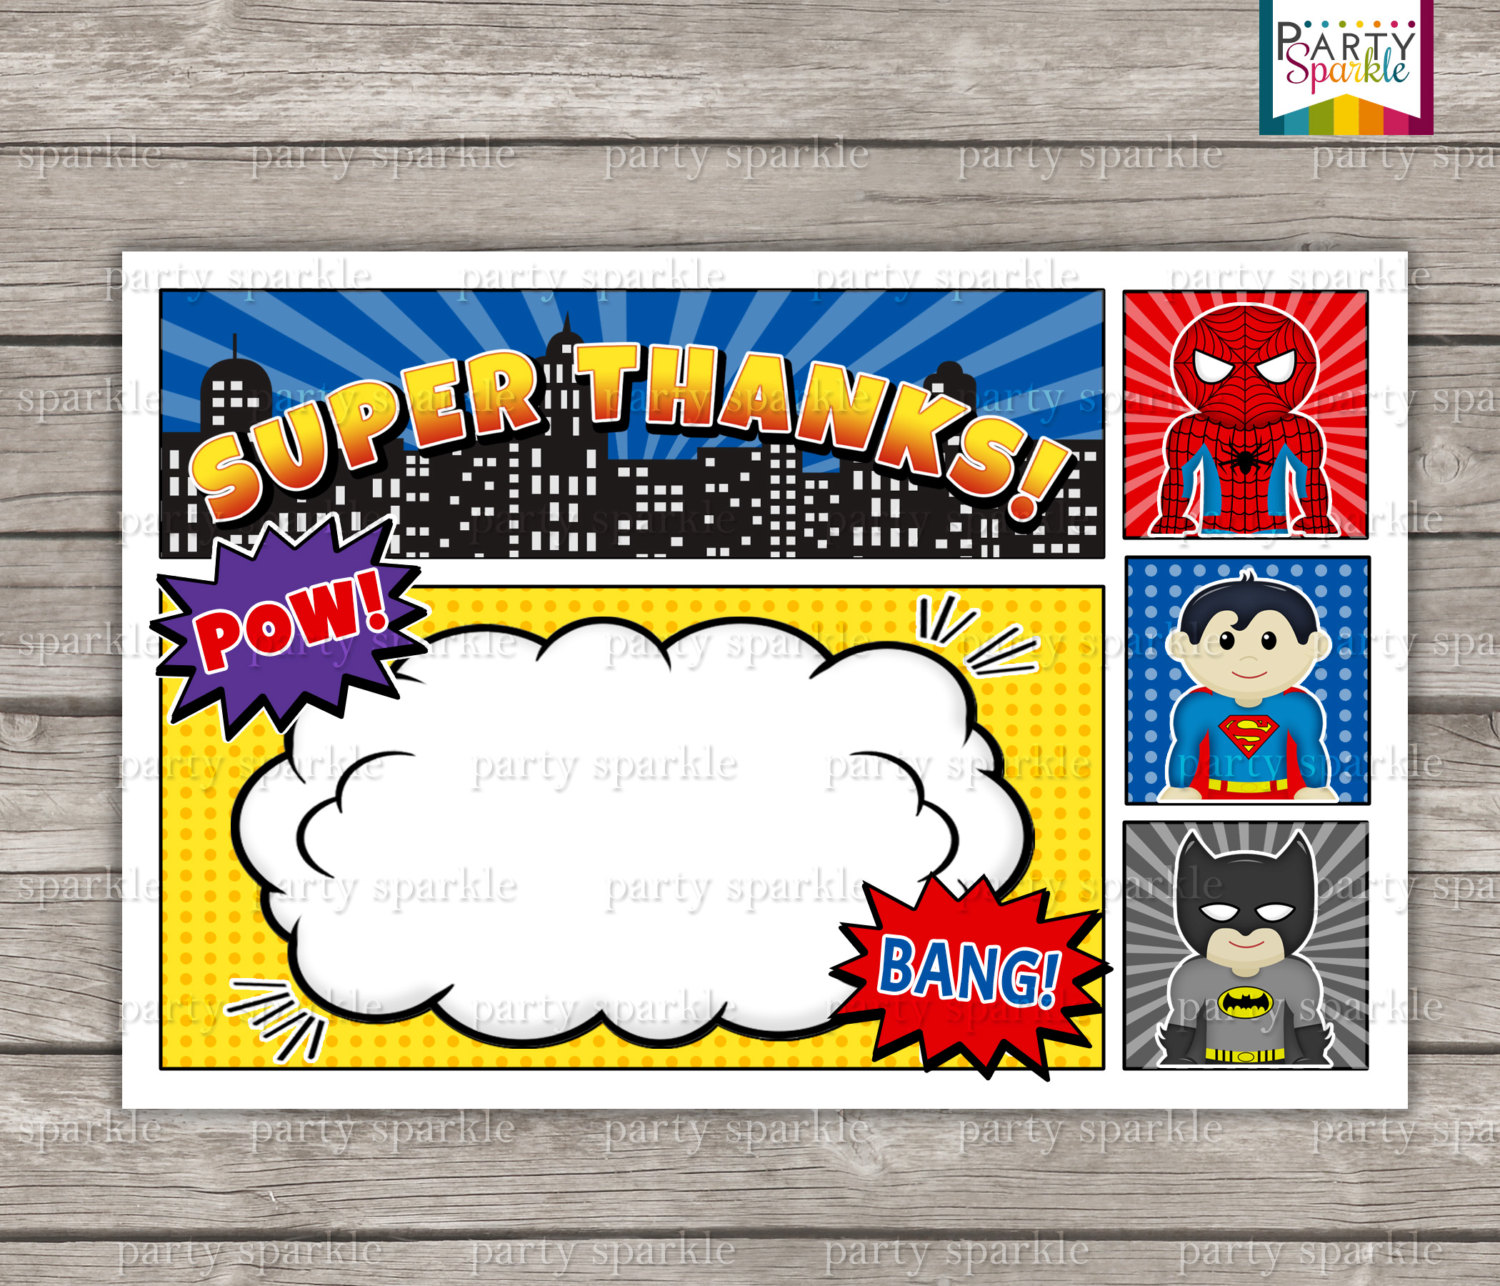 006 Excellent Editable Superhero Invitation Template Free Concept Full